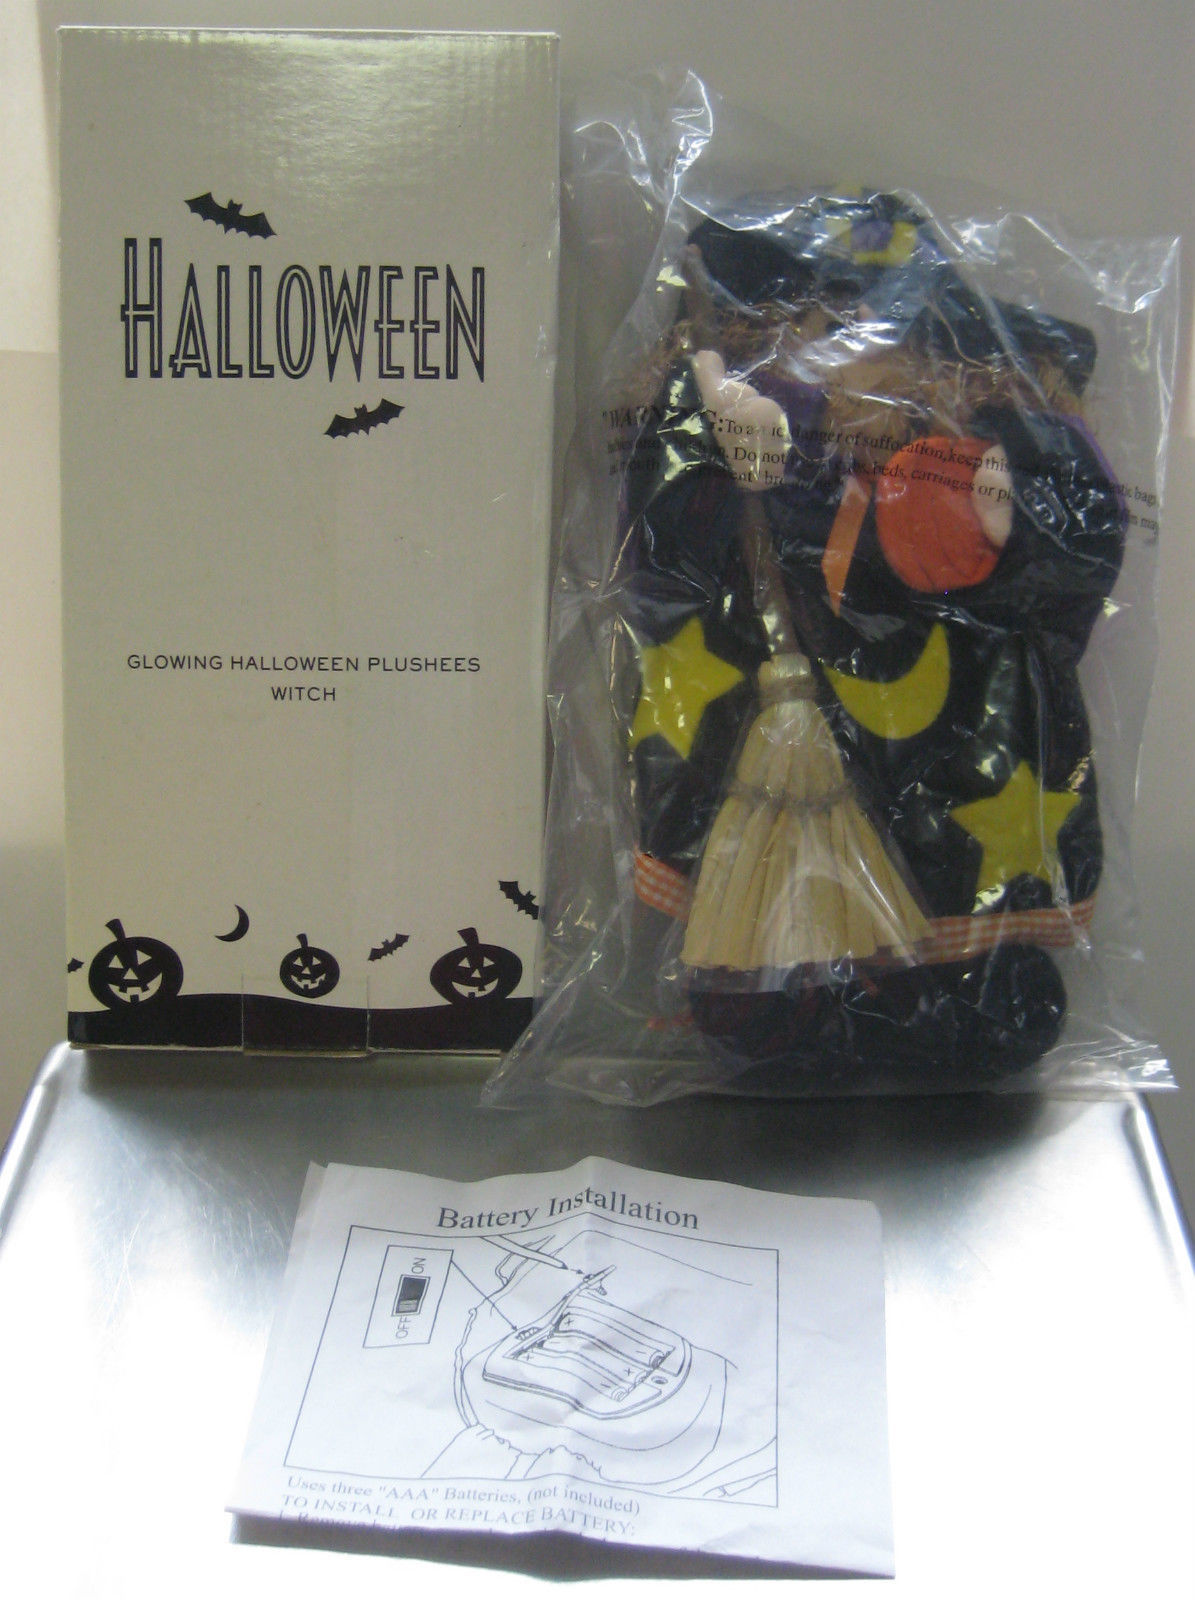 Fiber optic glowing halloween plushees witch new old stock for Fiber optic halloween decorations home